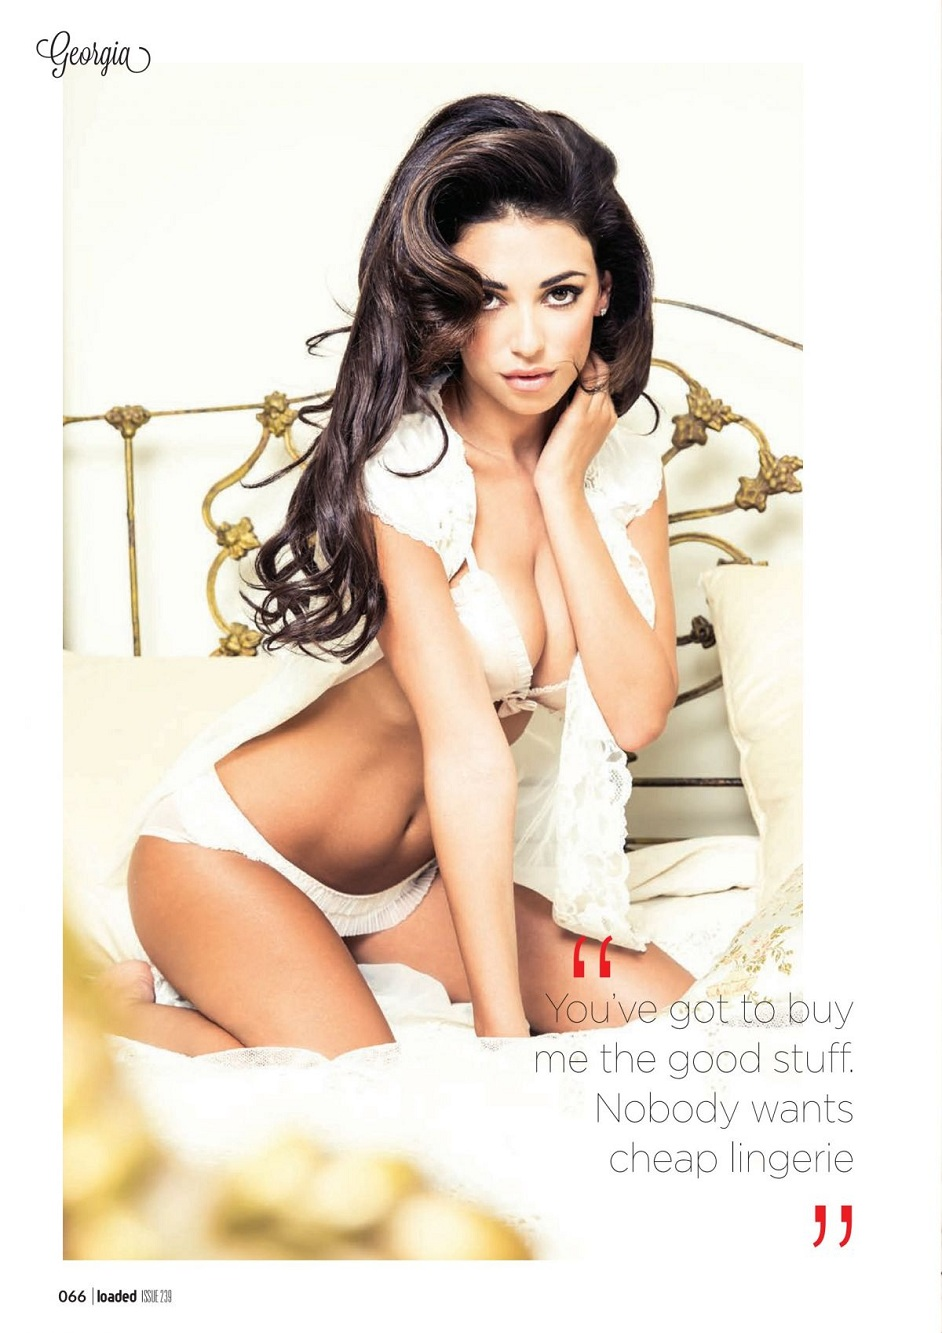 georgia-salpa-in-loaded-magazine-march-2014-issue_7.jpg - 221.21 KB